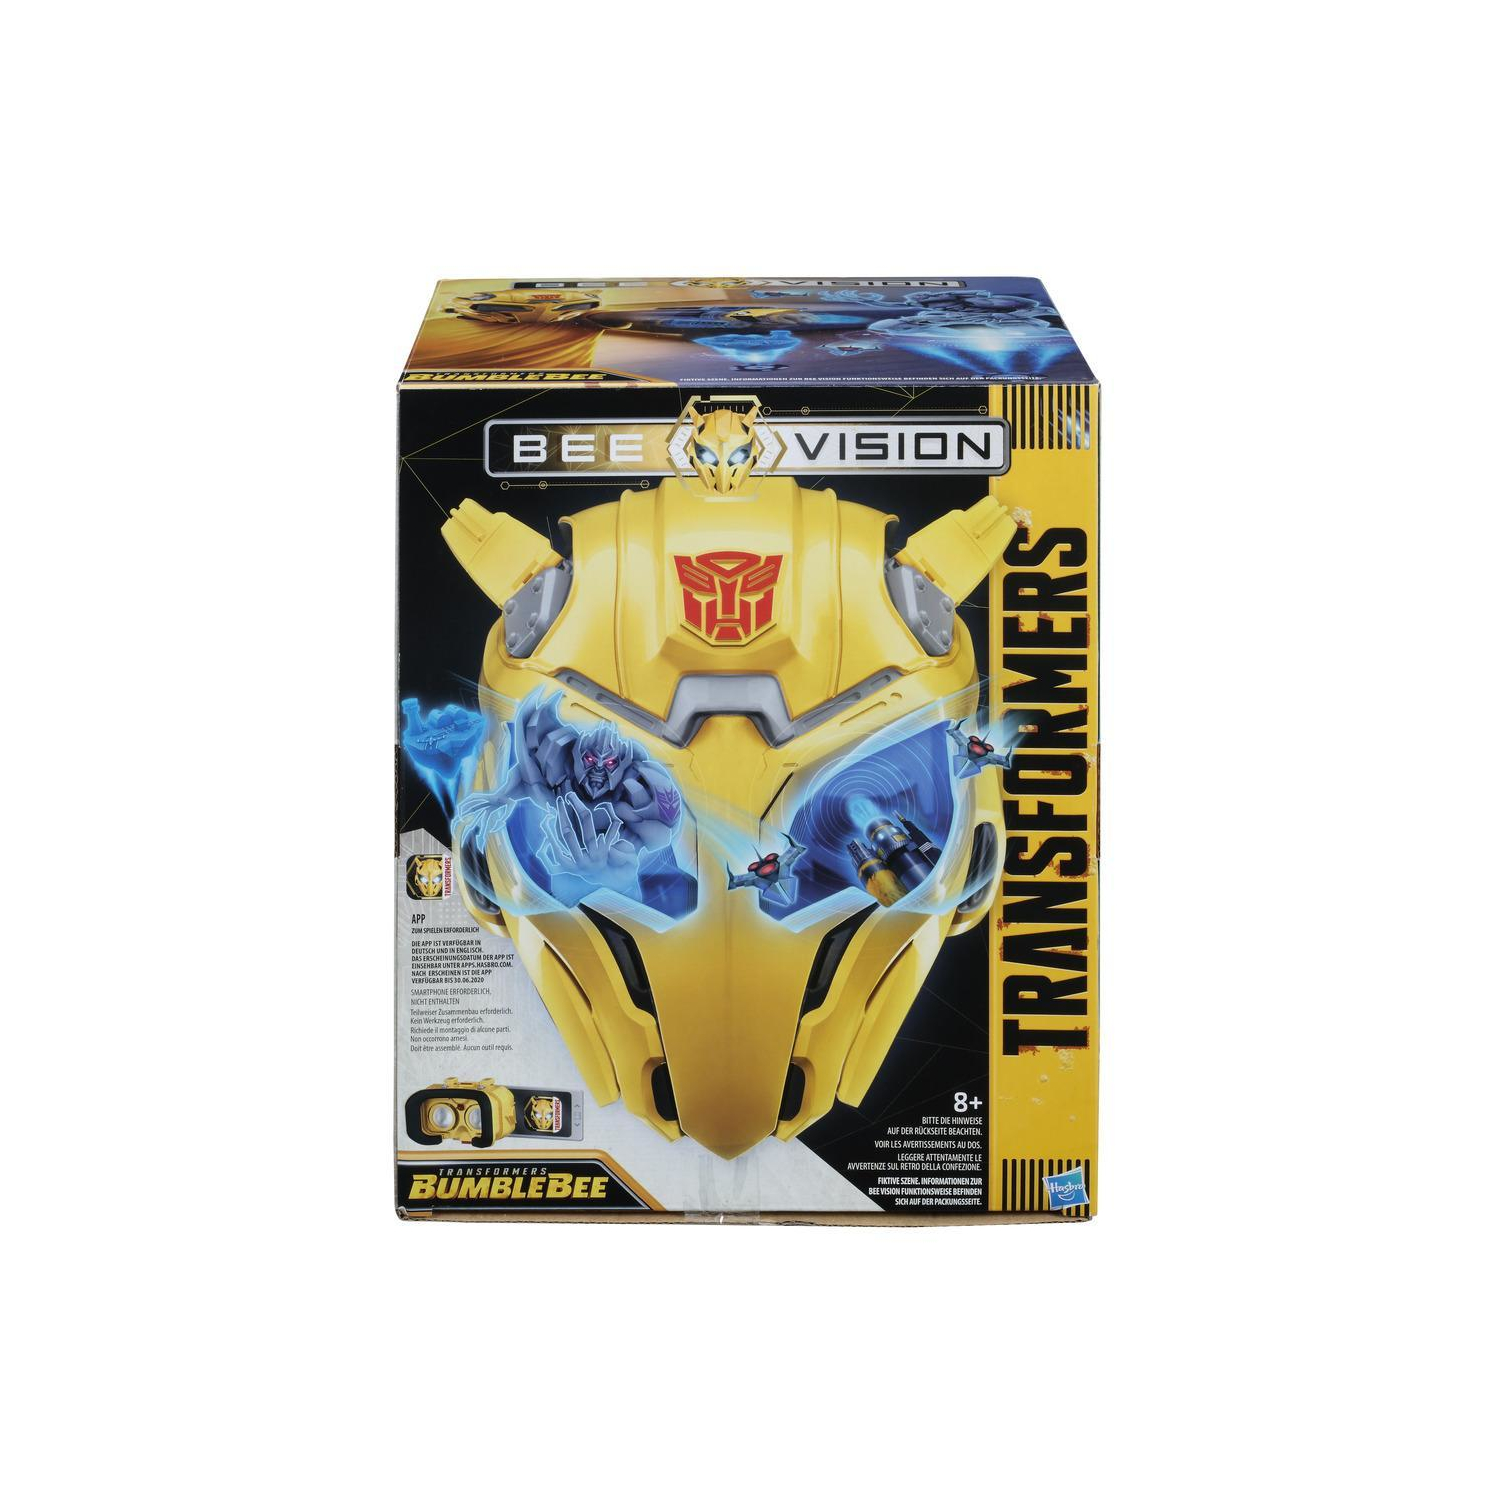 Bettwäsche Transformers Transformers-movie-6-bumblebee-vision-maske-ar-brille - Technic24.eu , 40,94 €